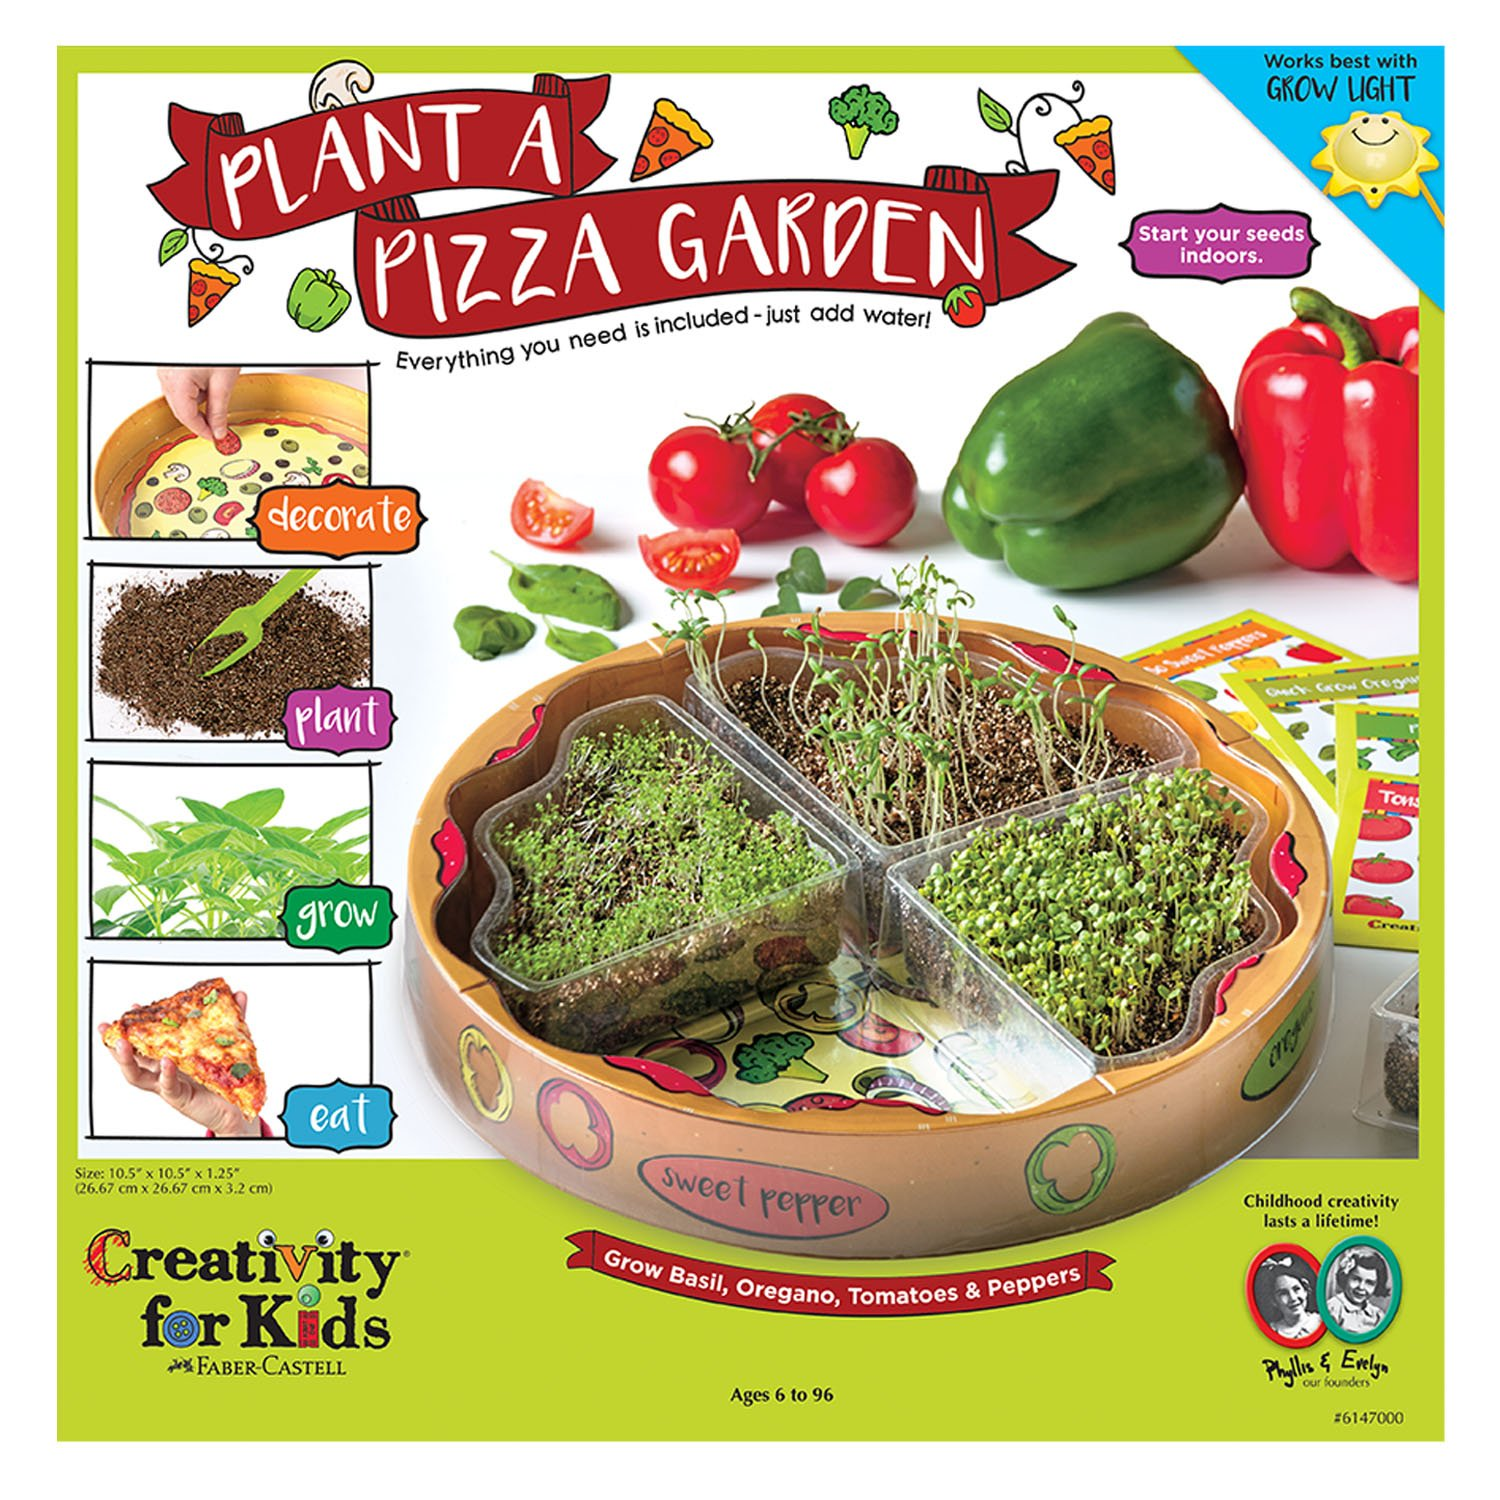 Final principl display panel - Plant a Pizza Garden